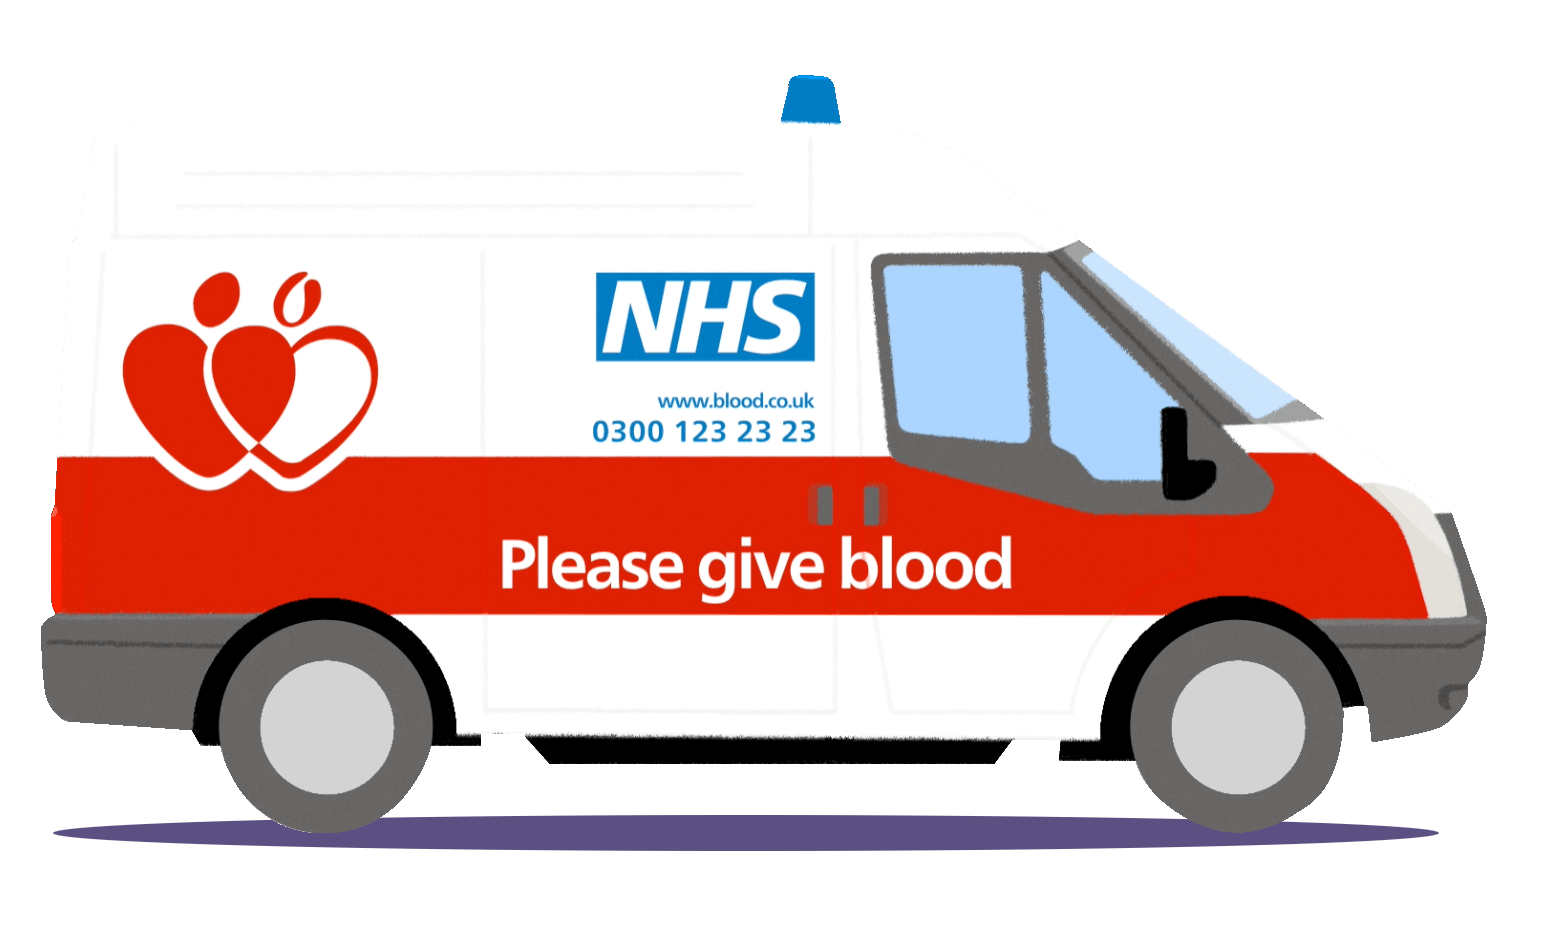 NHS Give Blood van